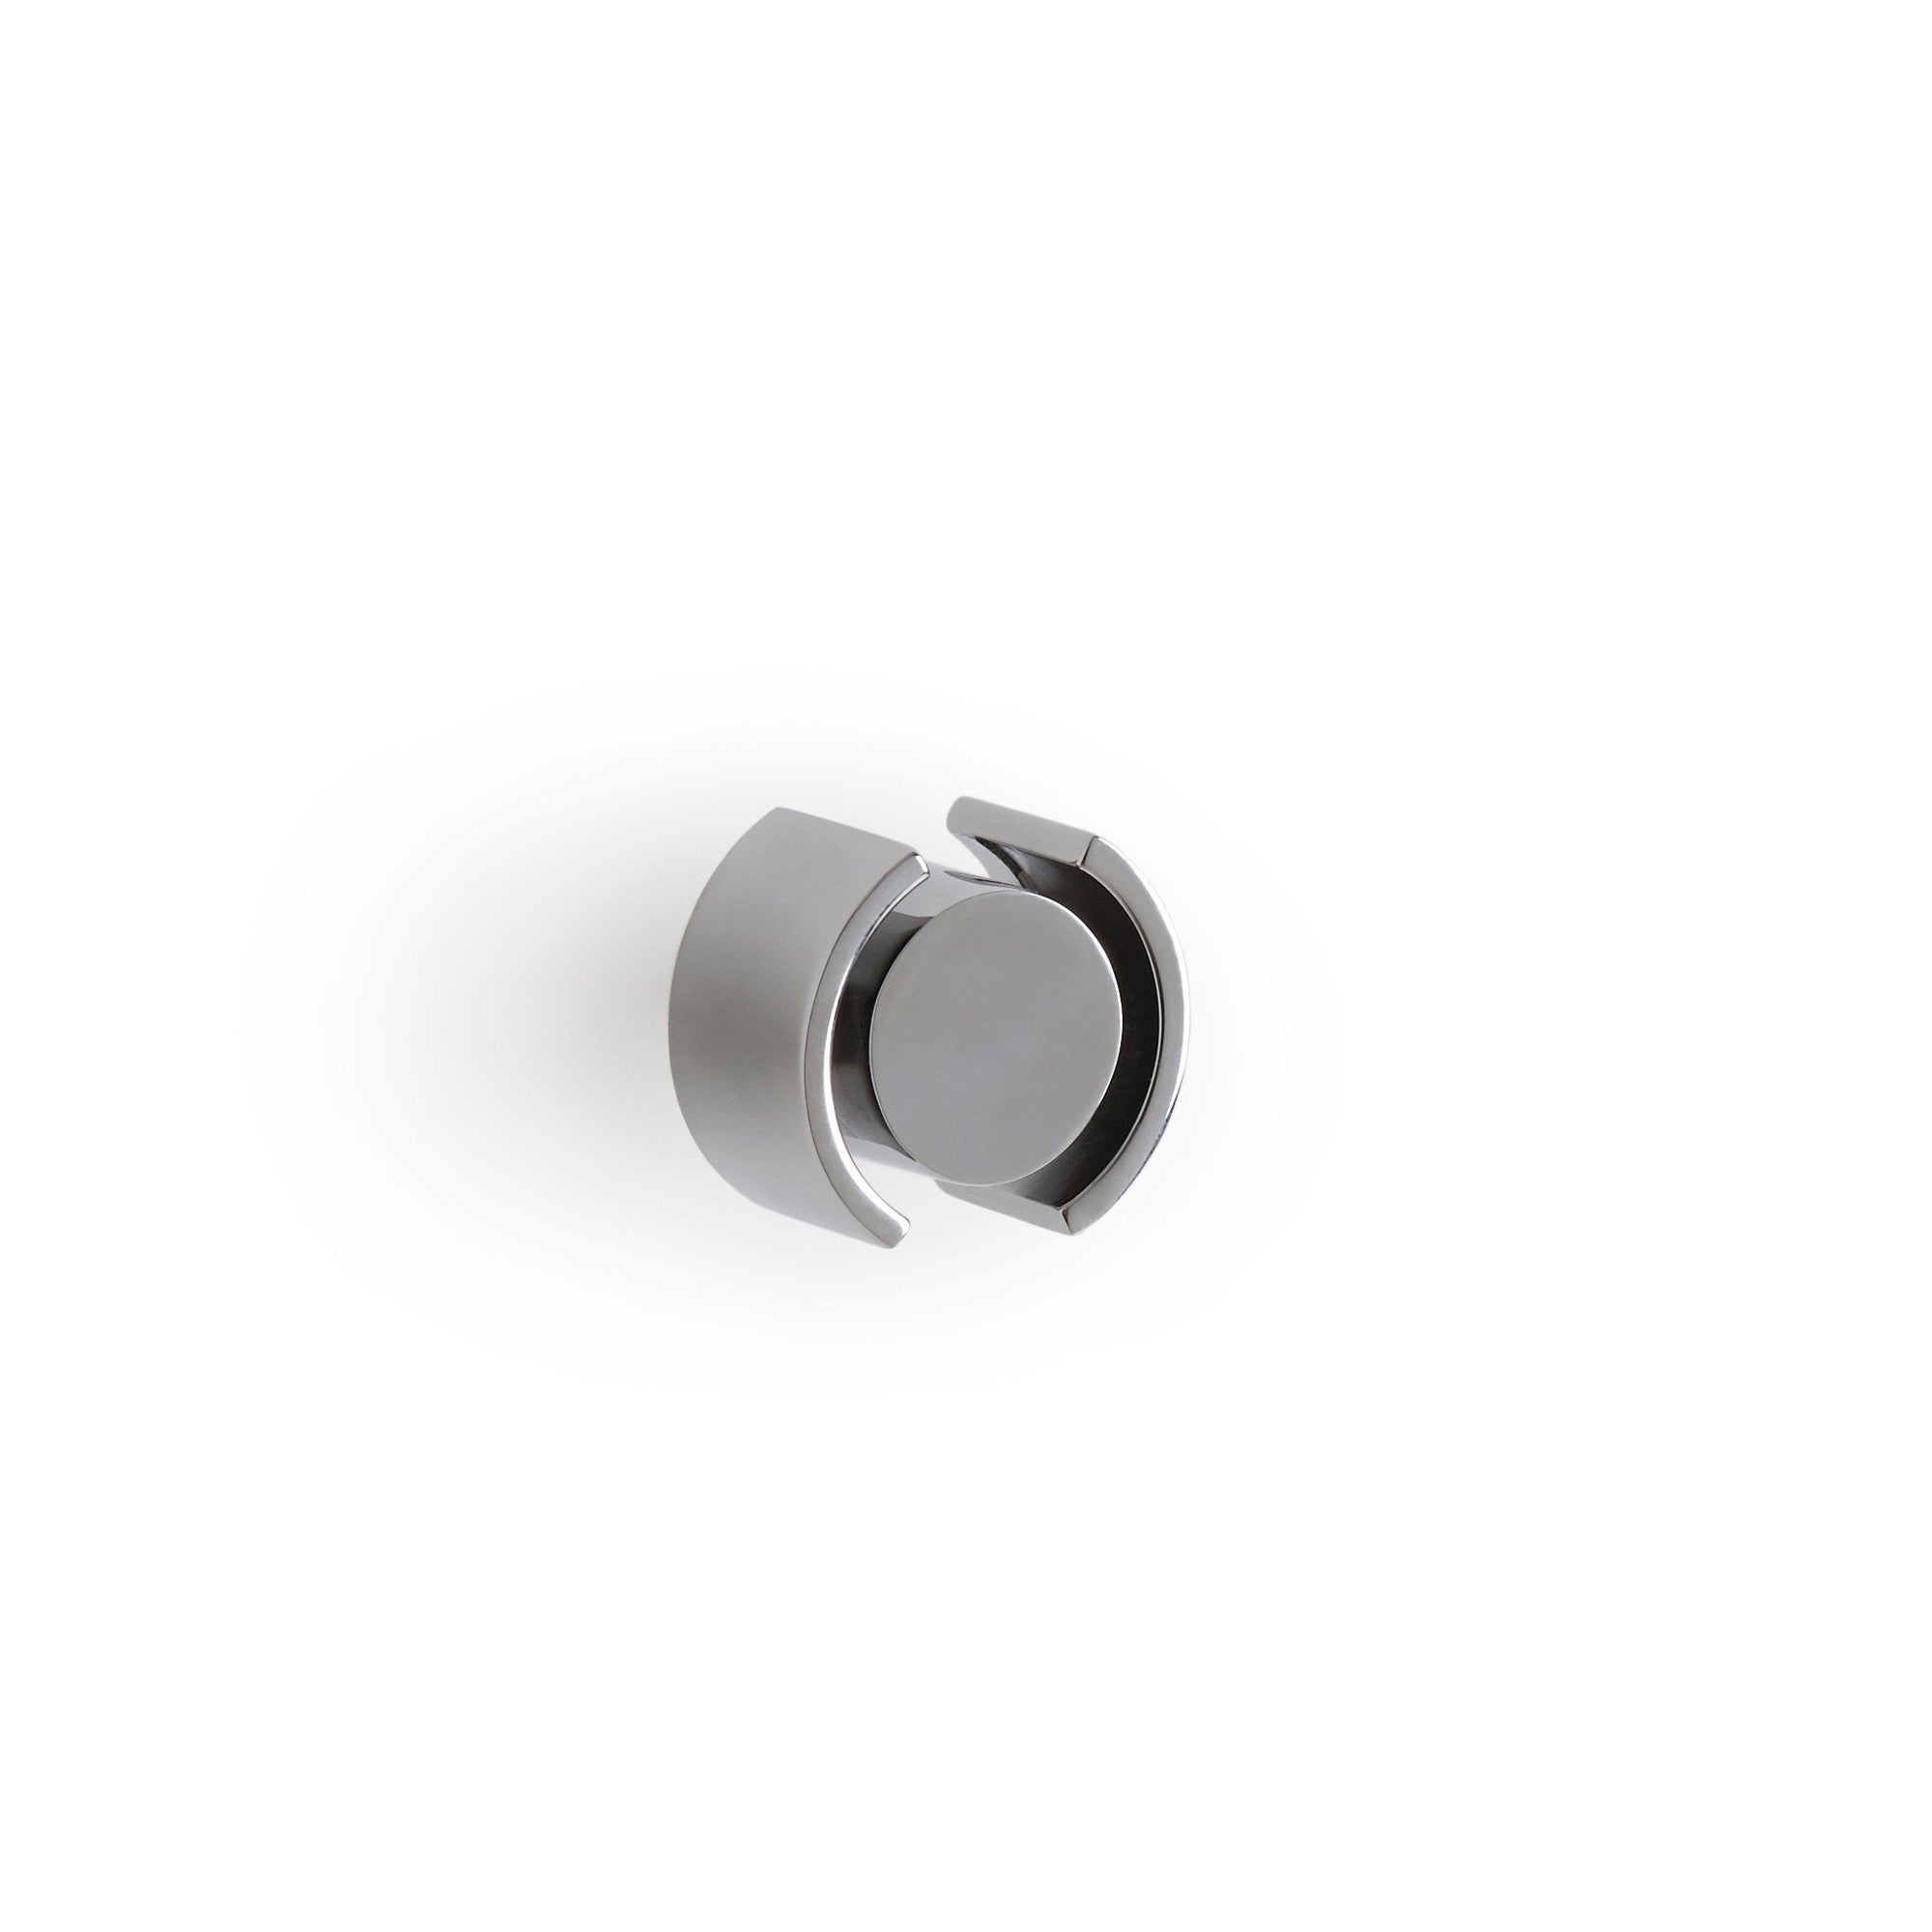 2012A-CP Sherle Wagner International Eclipse Cabinet & Drawer Knob in Polished Chrome metal finish